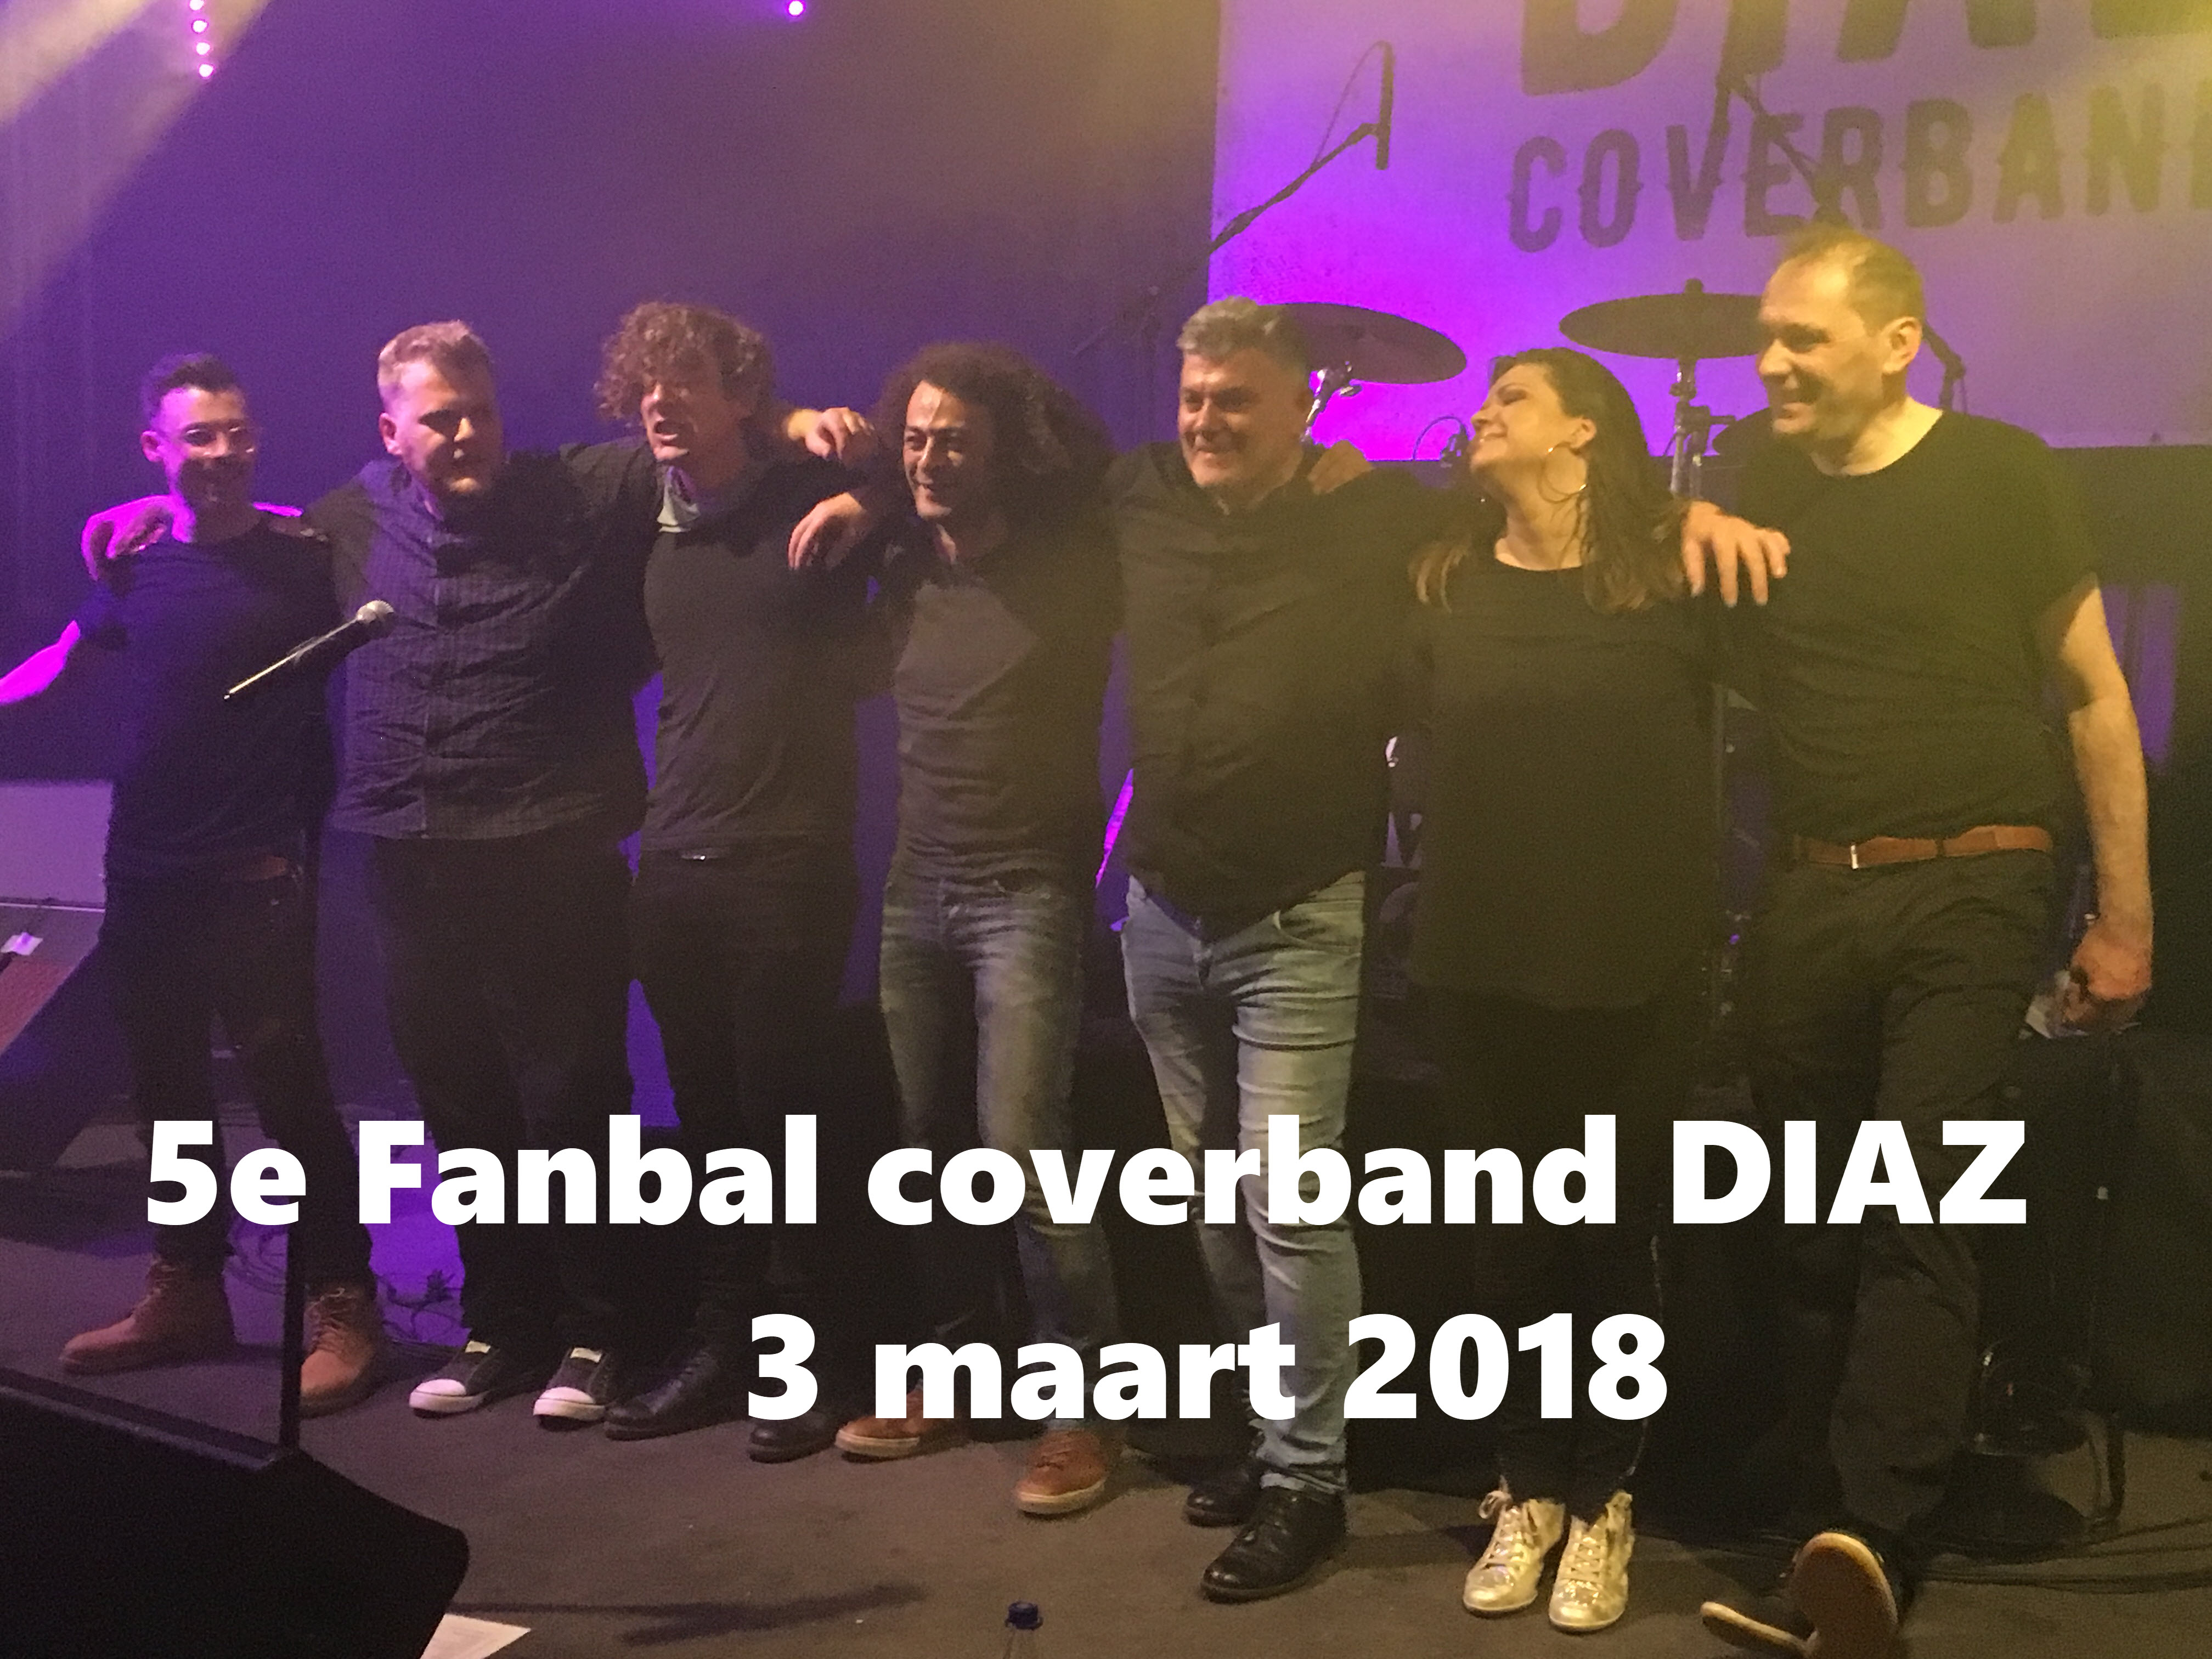 Coverband Diaz fanbal 2018_0